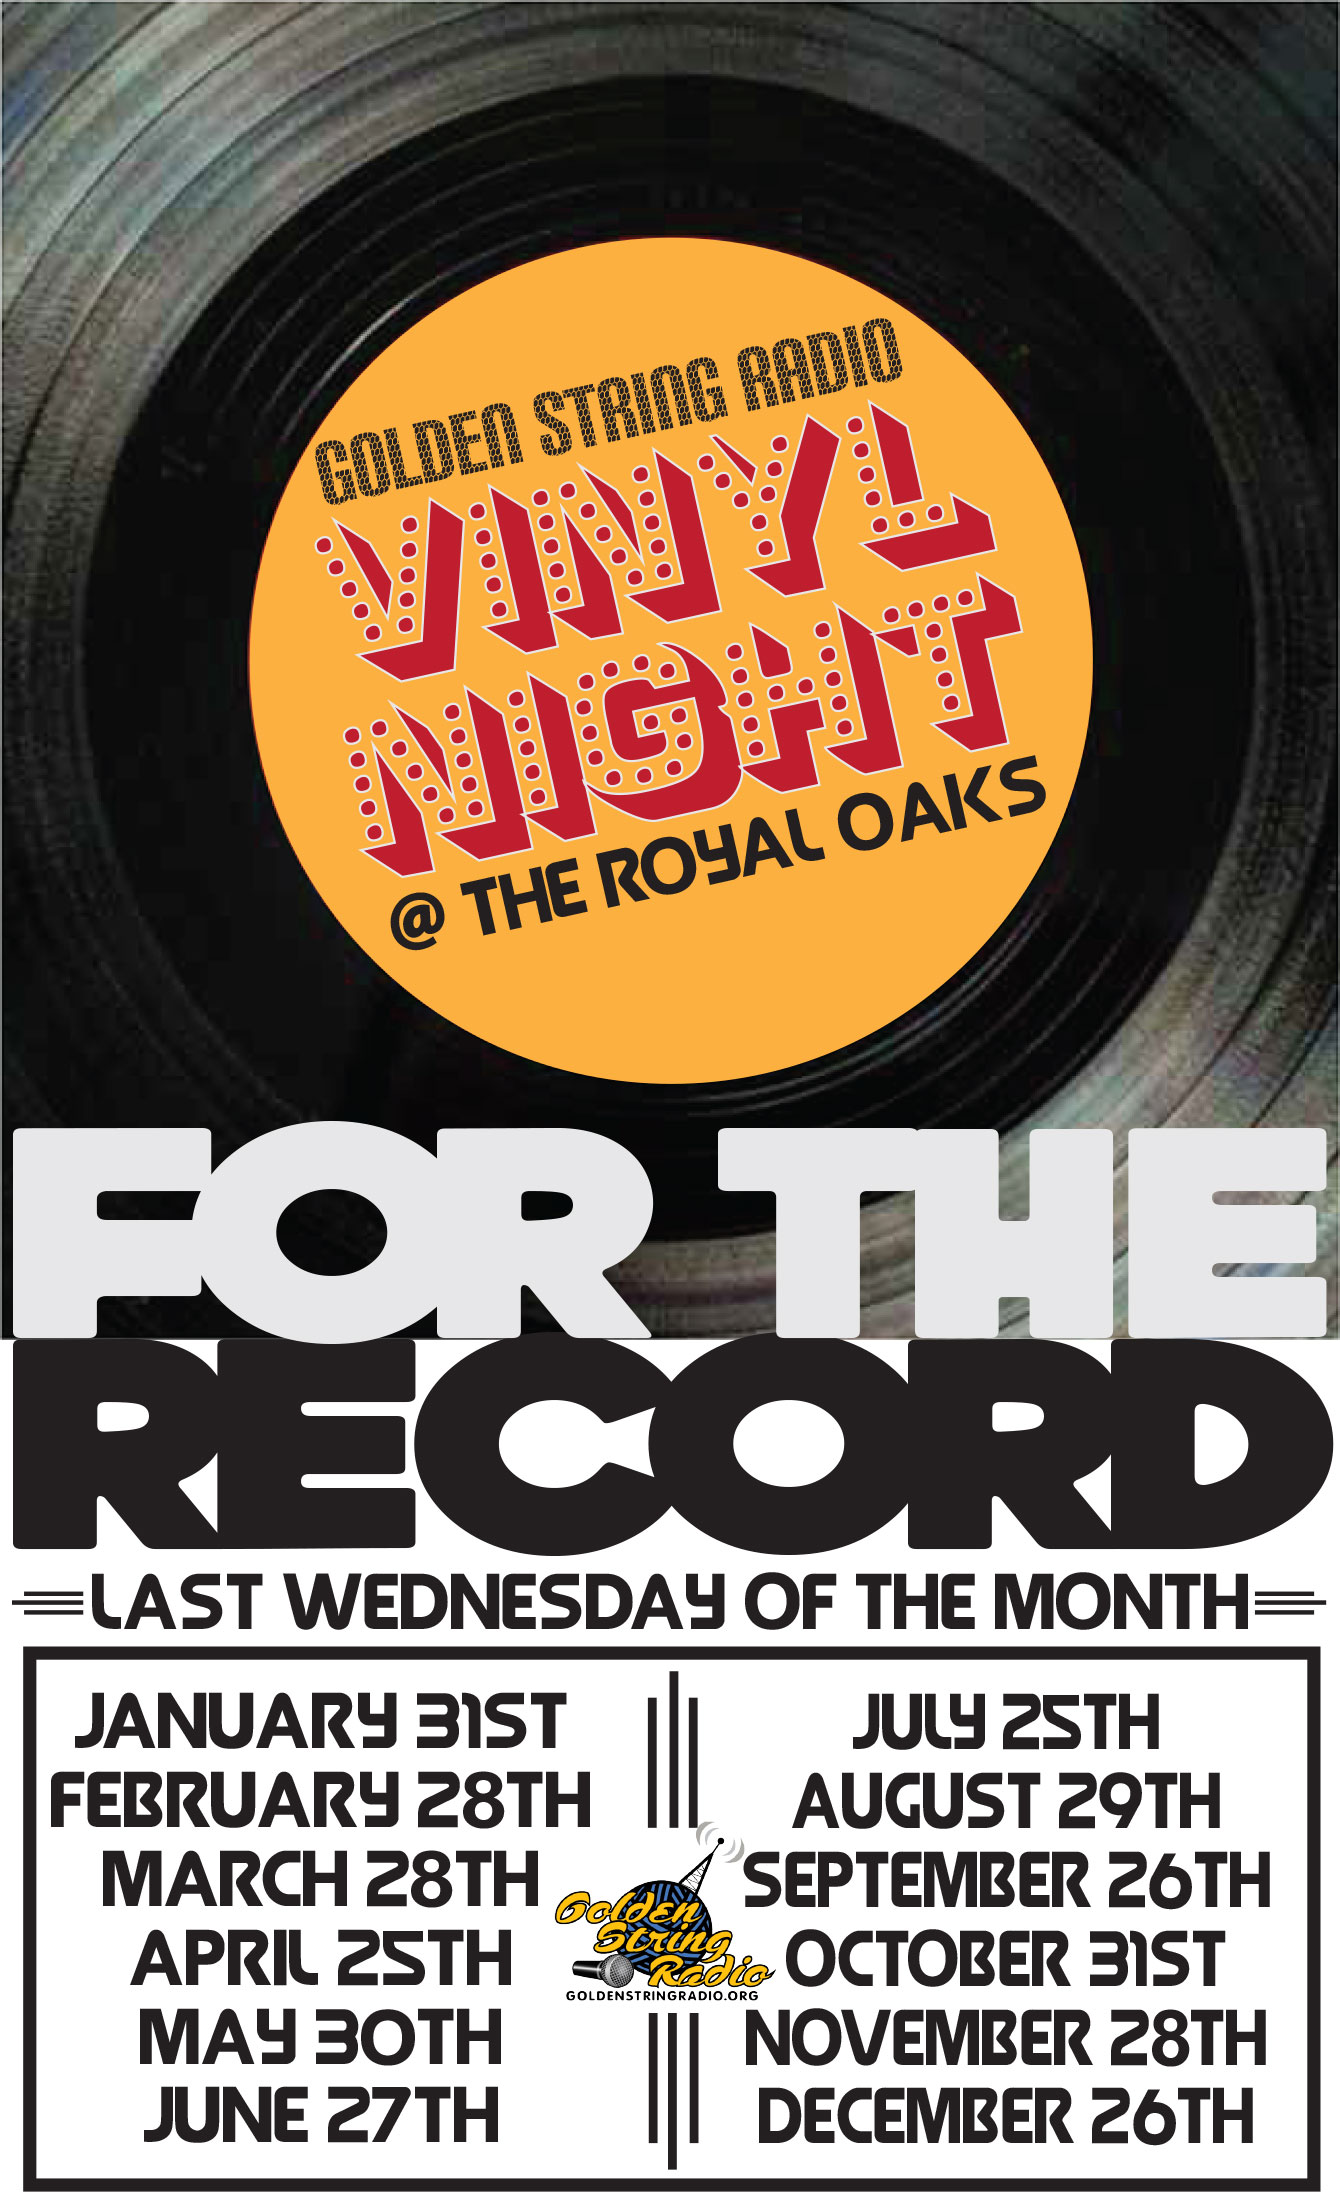 Vinyl Happy Hour at The Royal Oaks